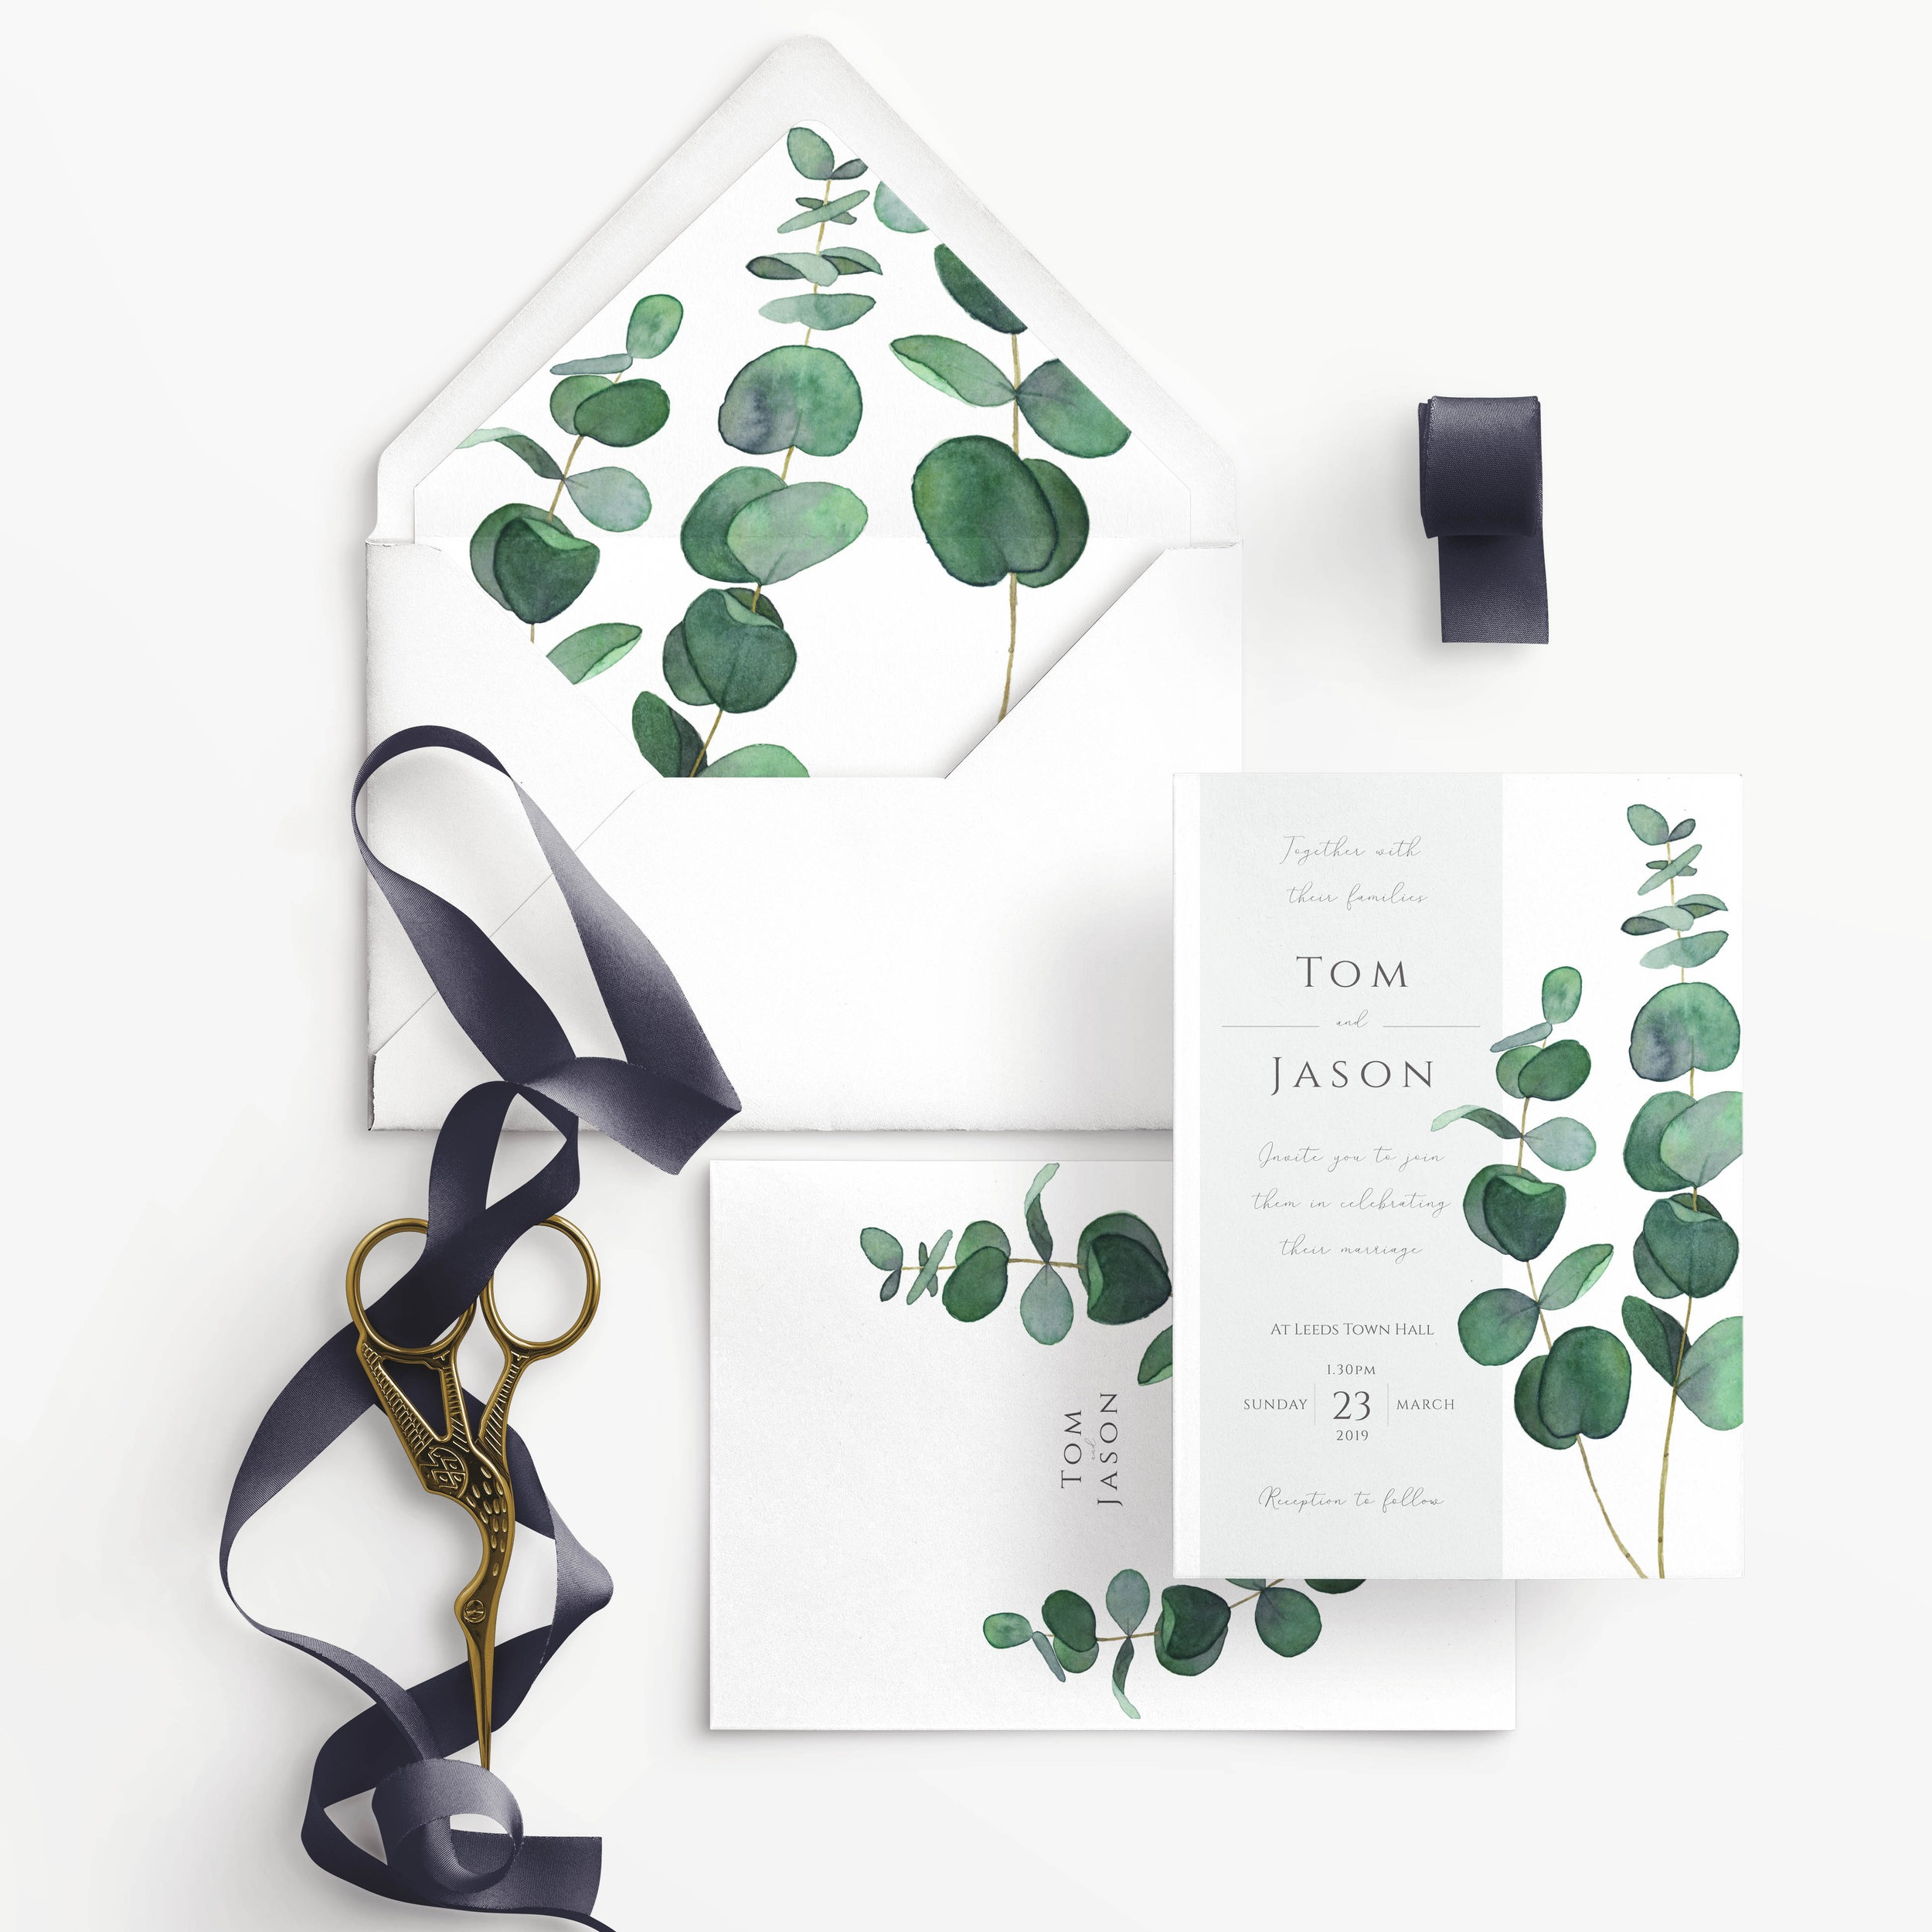 EUCALYPTUS - One of our hand-painted House Collection designs.